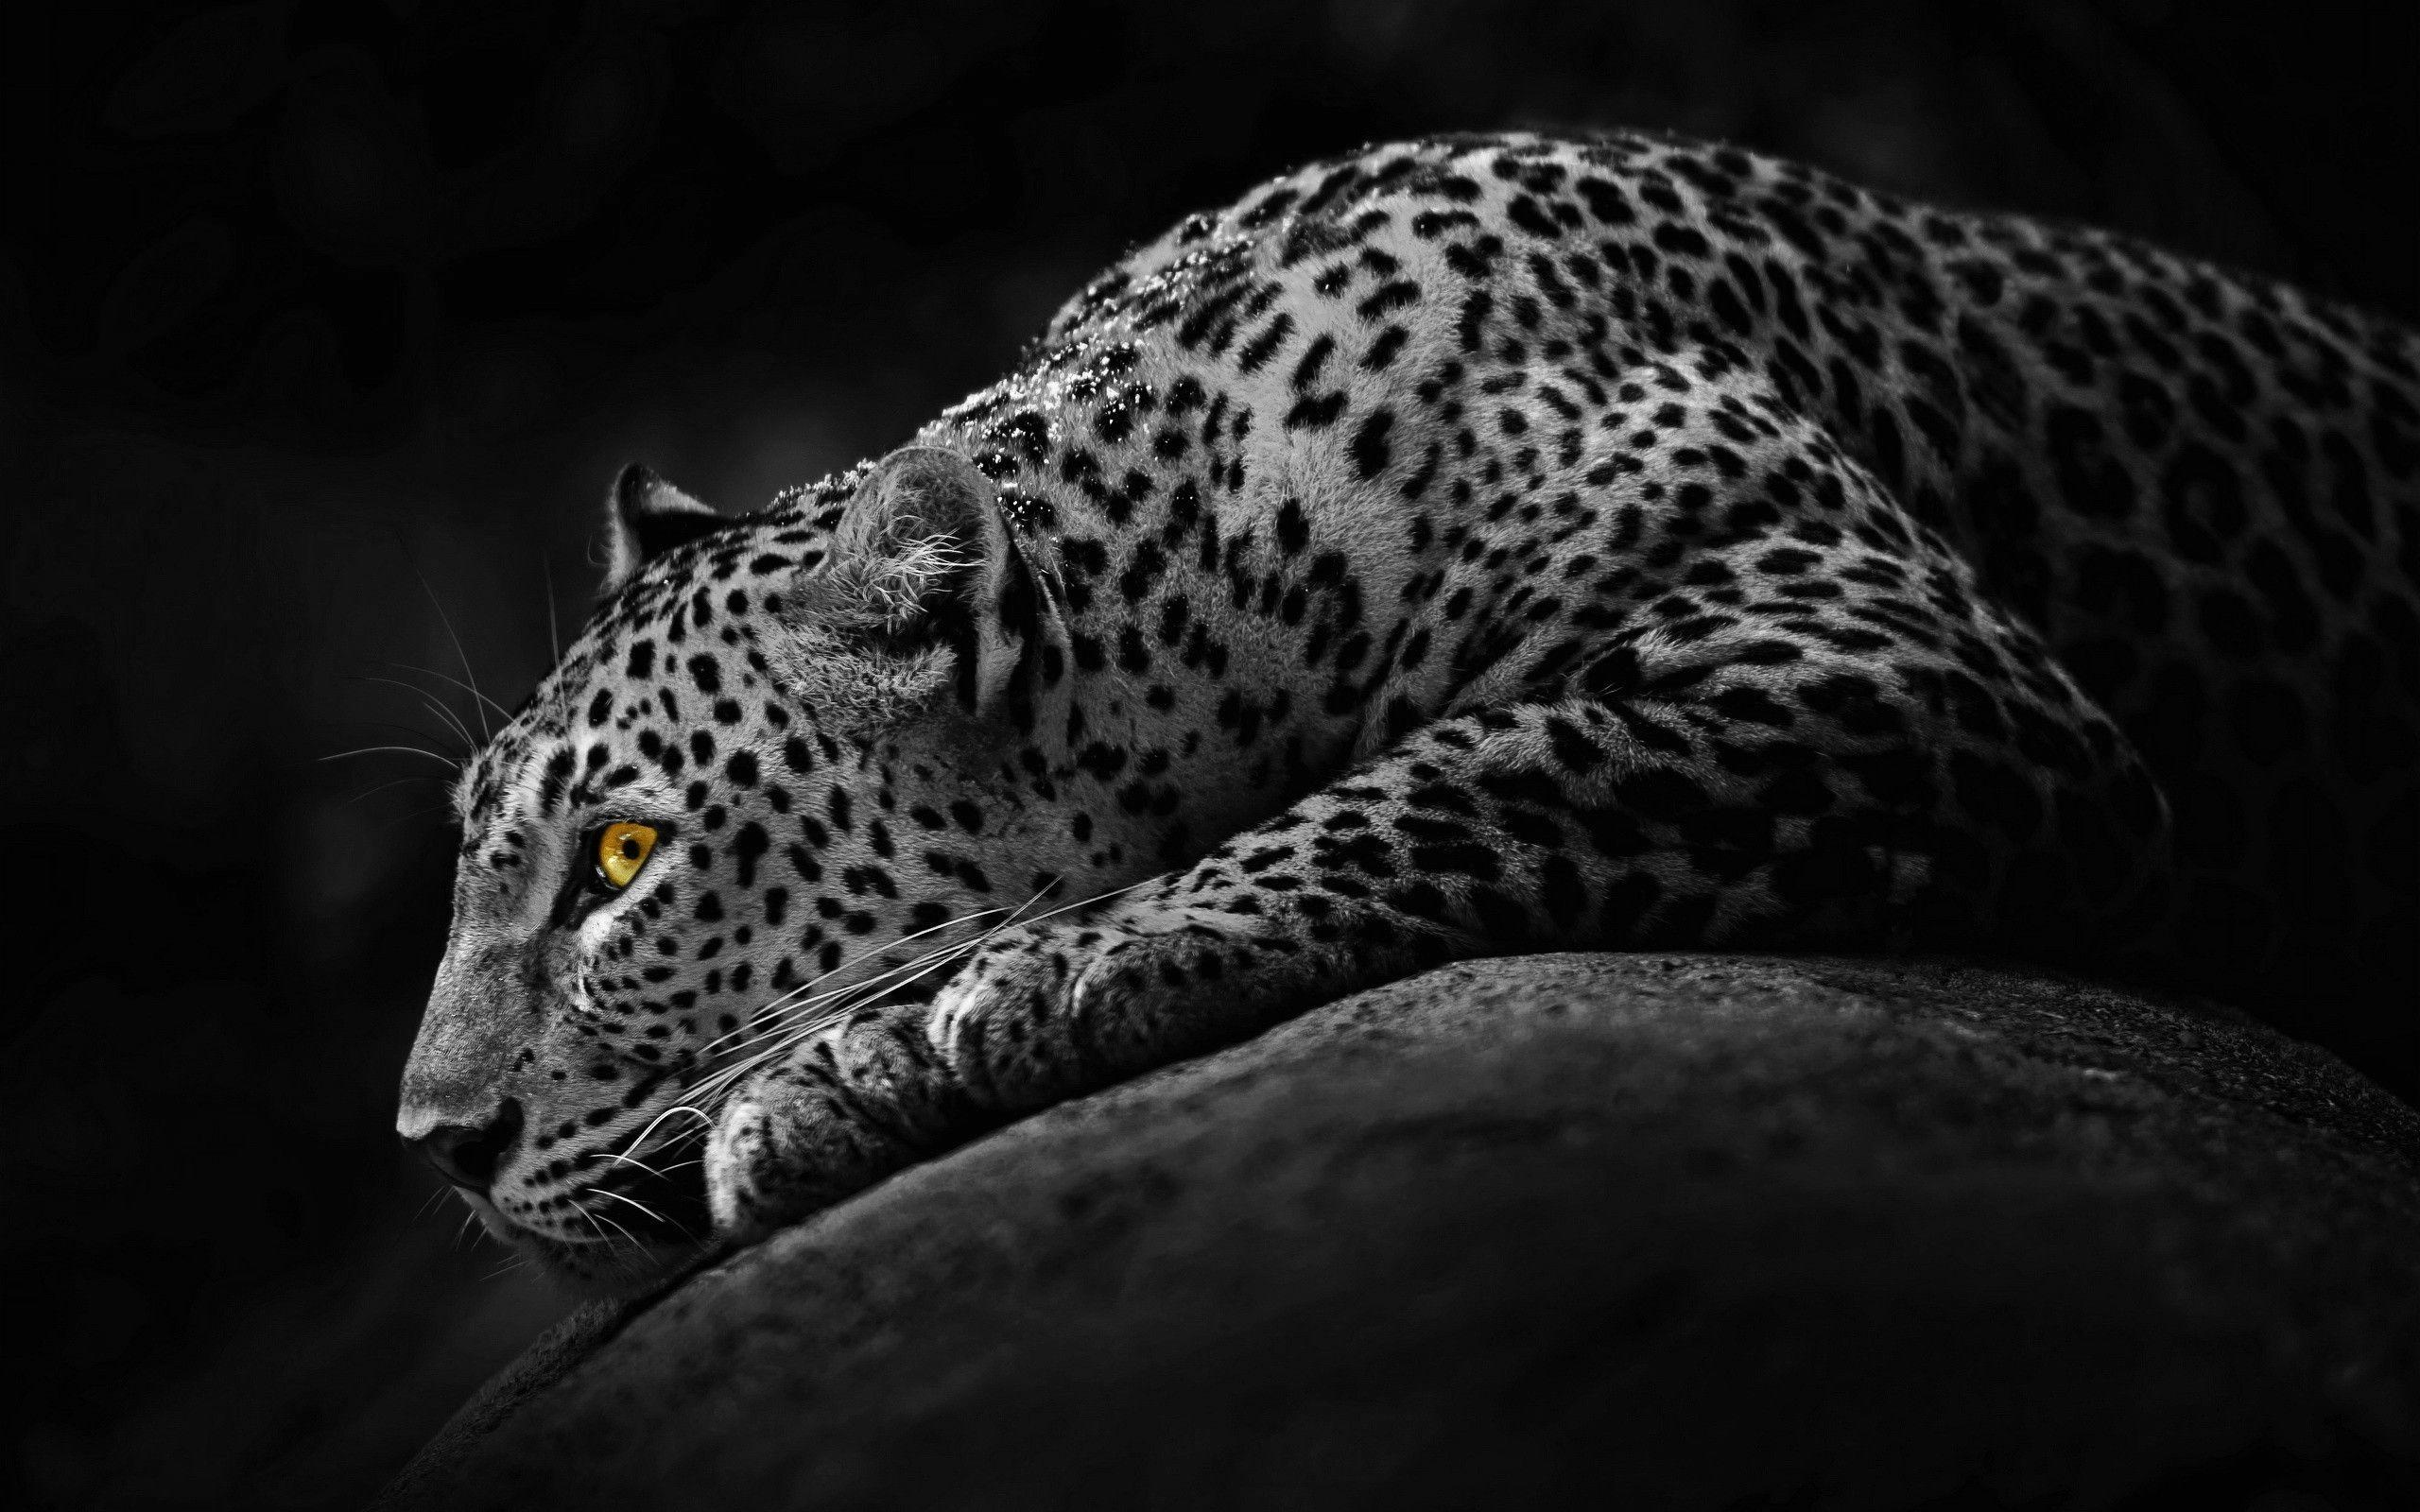 Black jaguar wallpapers wallpaper cave - Jaguar animal hd wallpapers ...